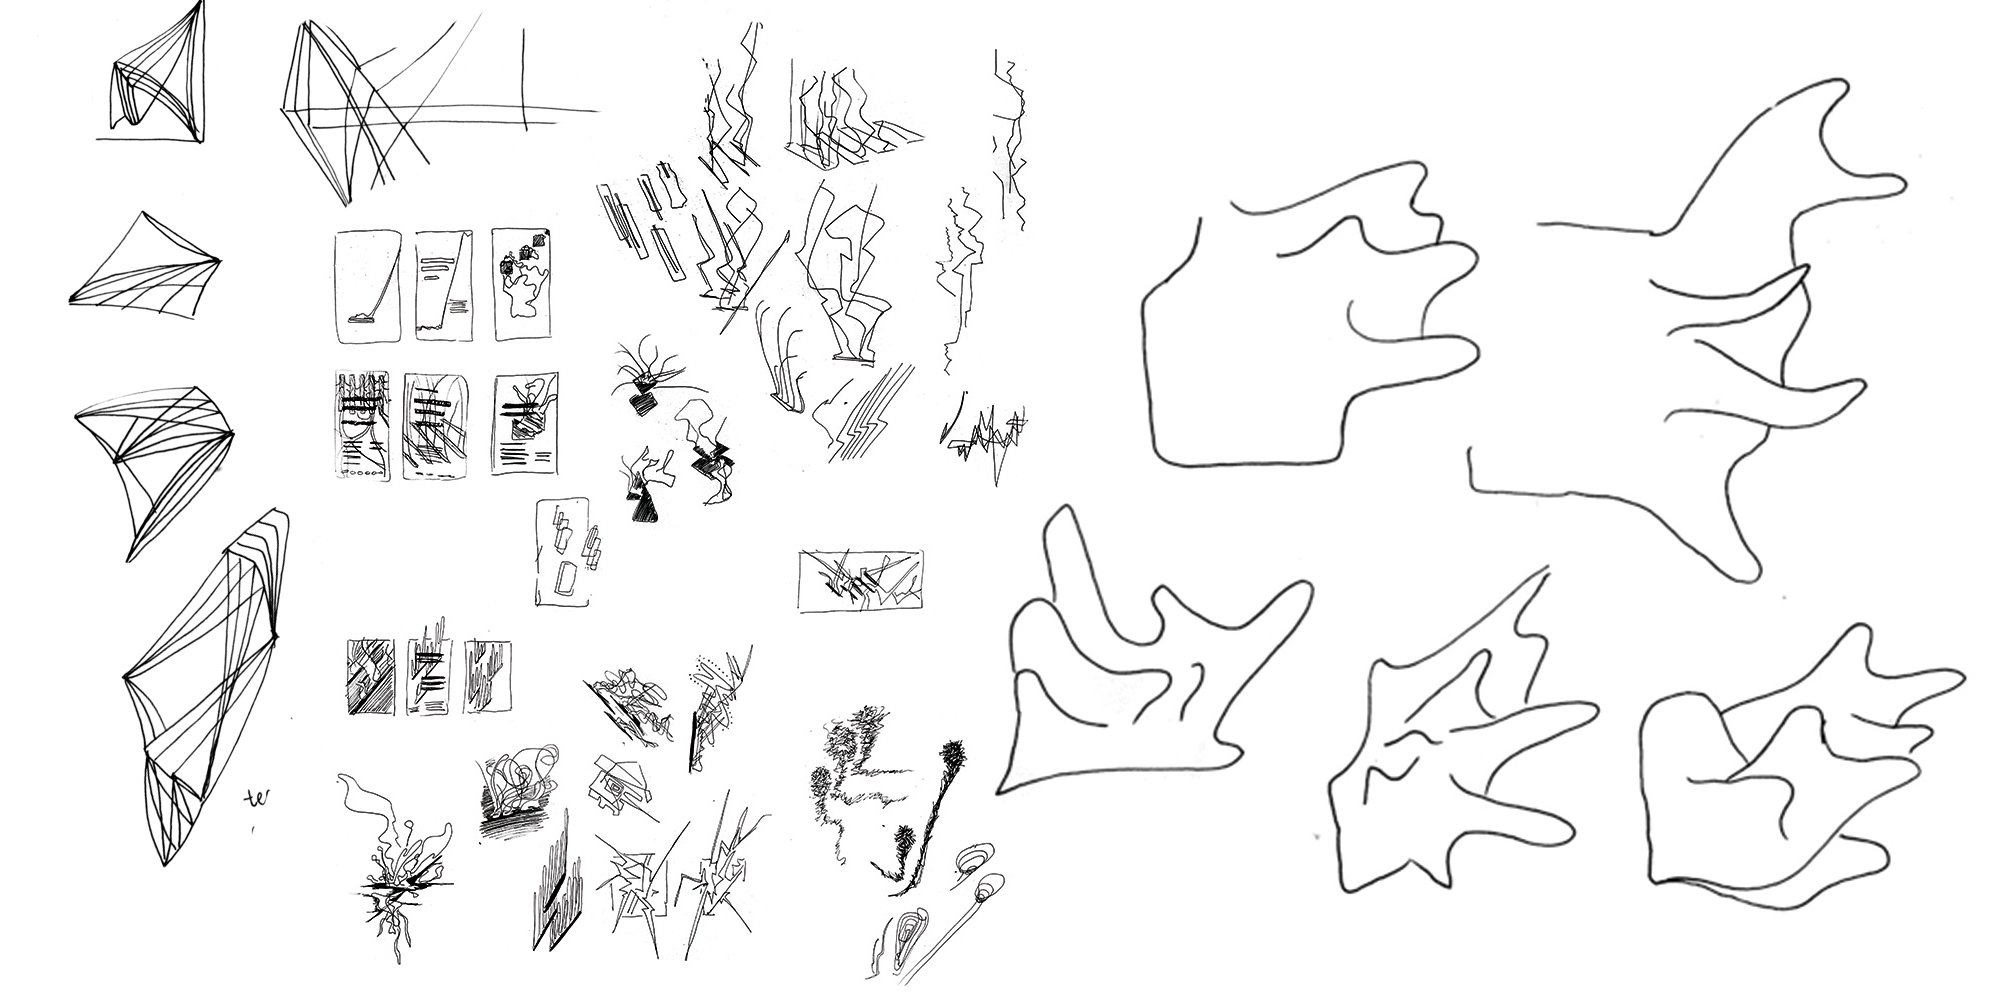 Image of ink sketches resulted from listening to the music featured in The Music Gallery's 2017-2018 season. The left half of the image contains various abstract line drawings, scribbles and doodles. The right half contains five sketches of gooey-looking shapes.